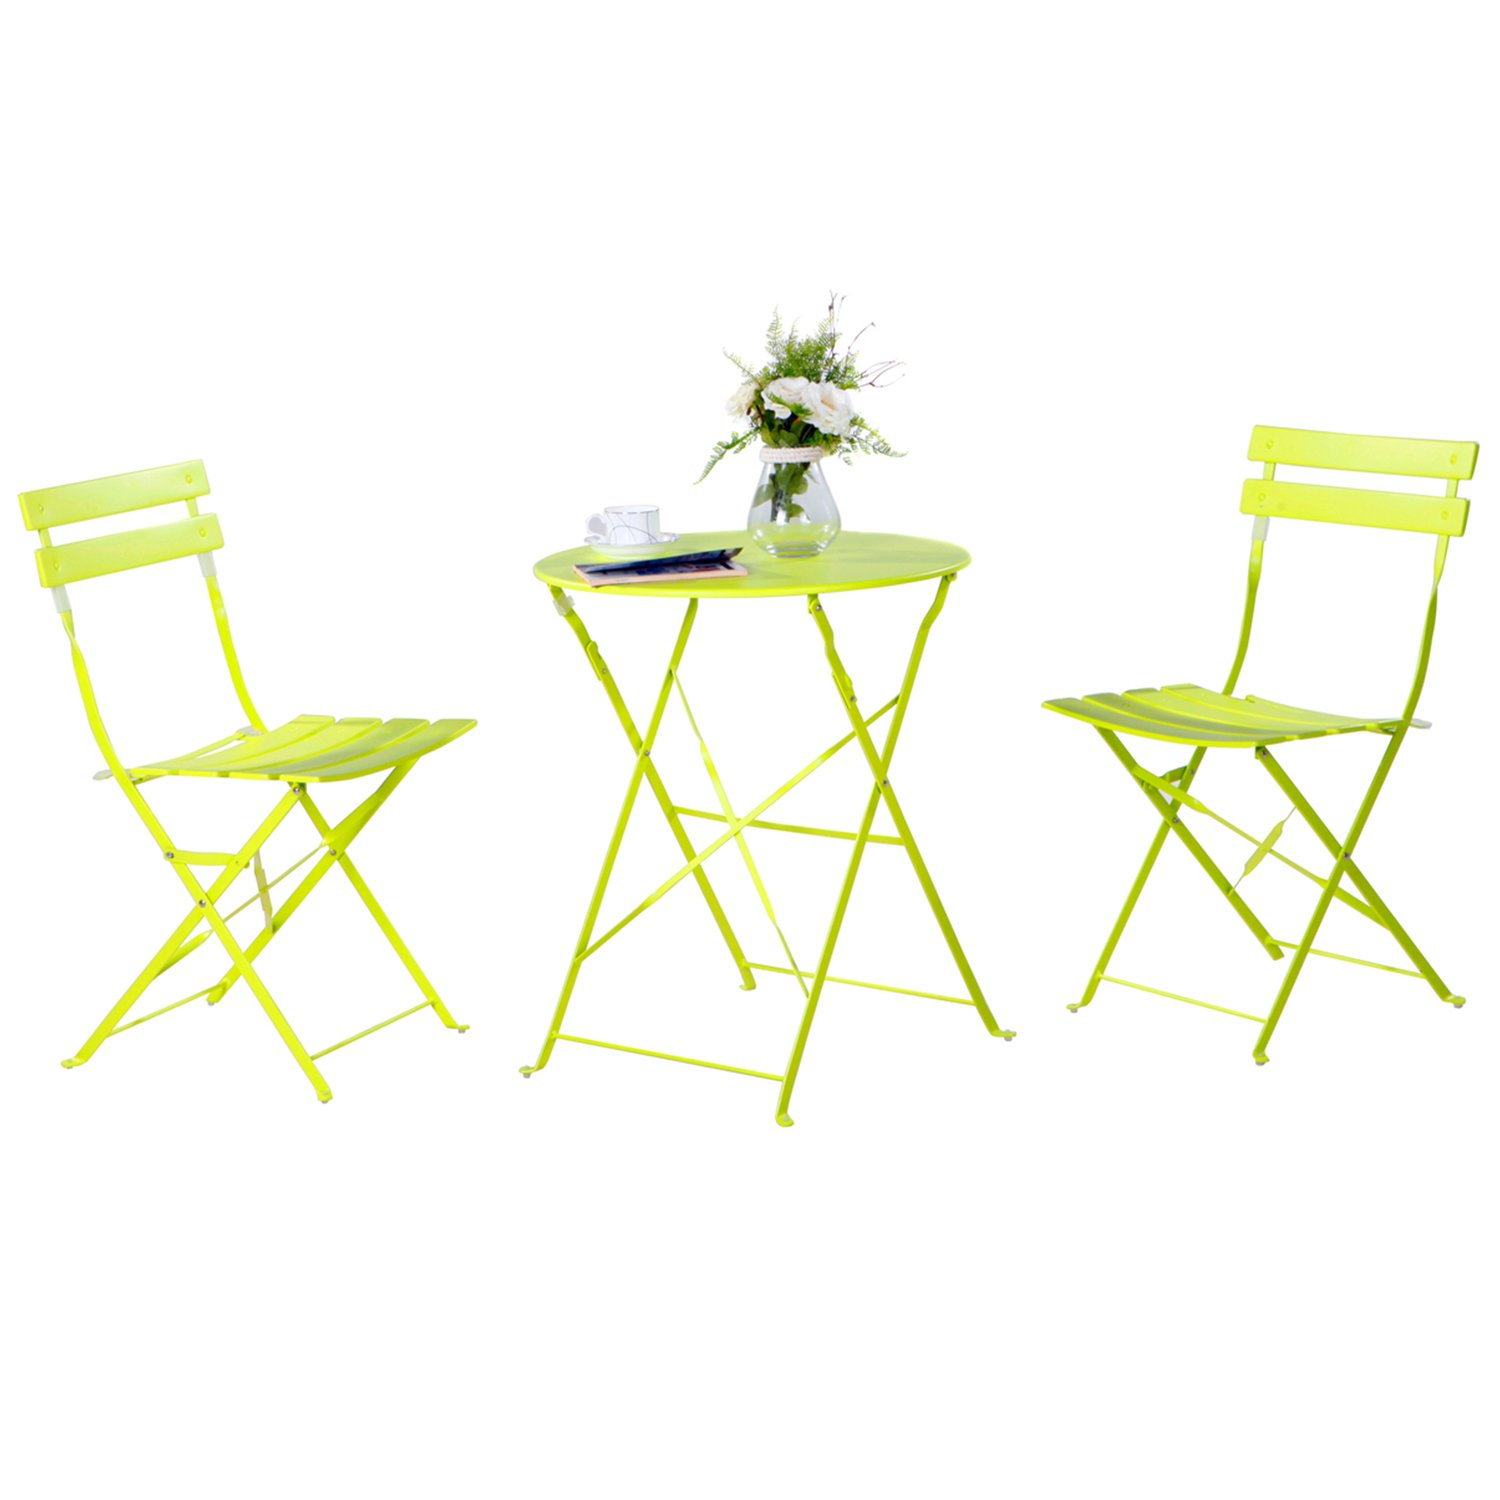 Grand patio 3-Pack Sling Glider Folding Steel 2 Chairs Round Table Indoor Corner Sets,Vivid Green by Grand patio (Image #1)